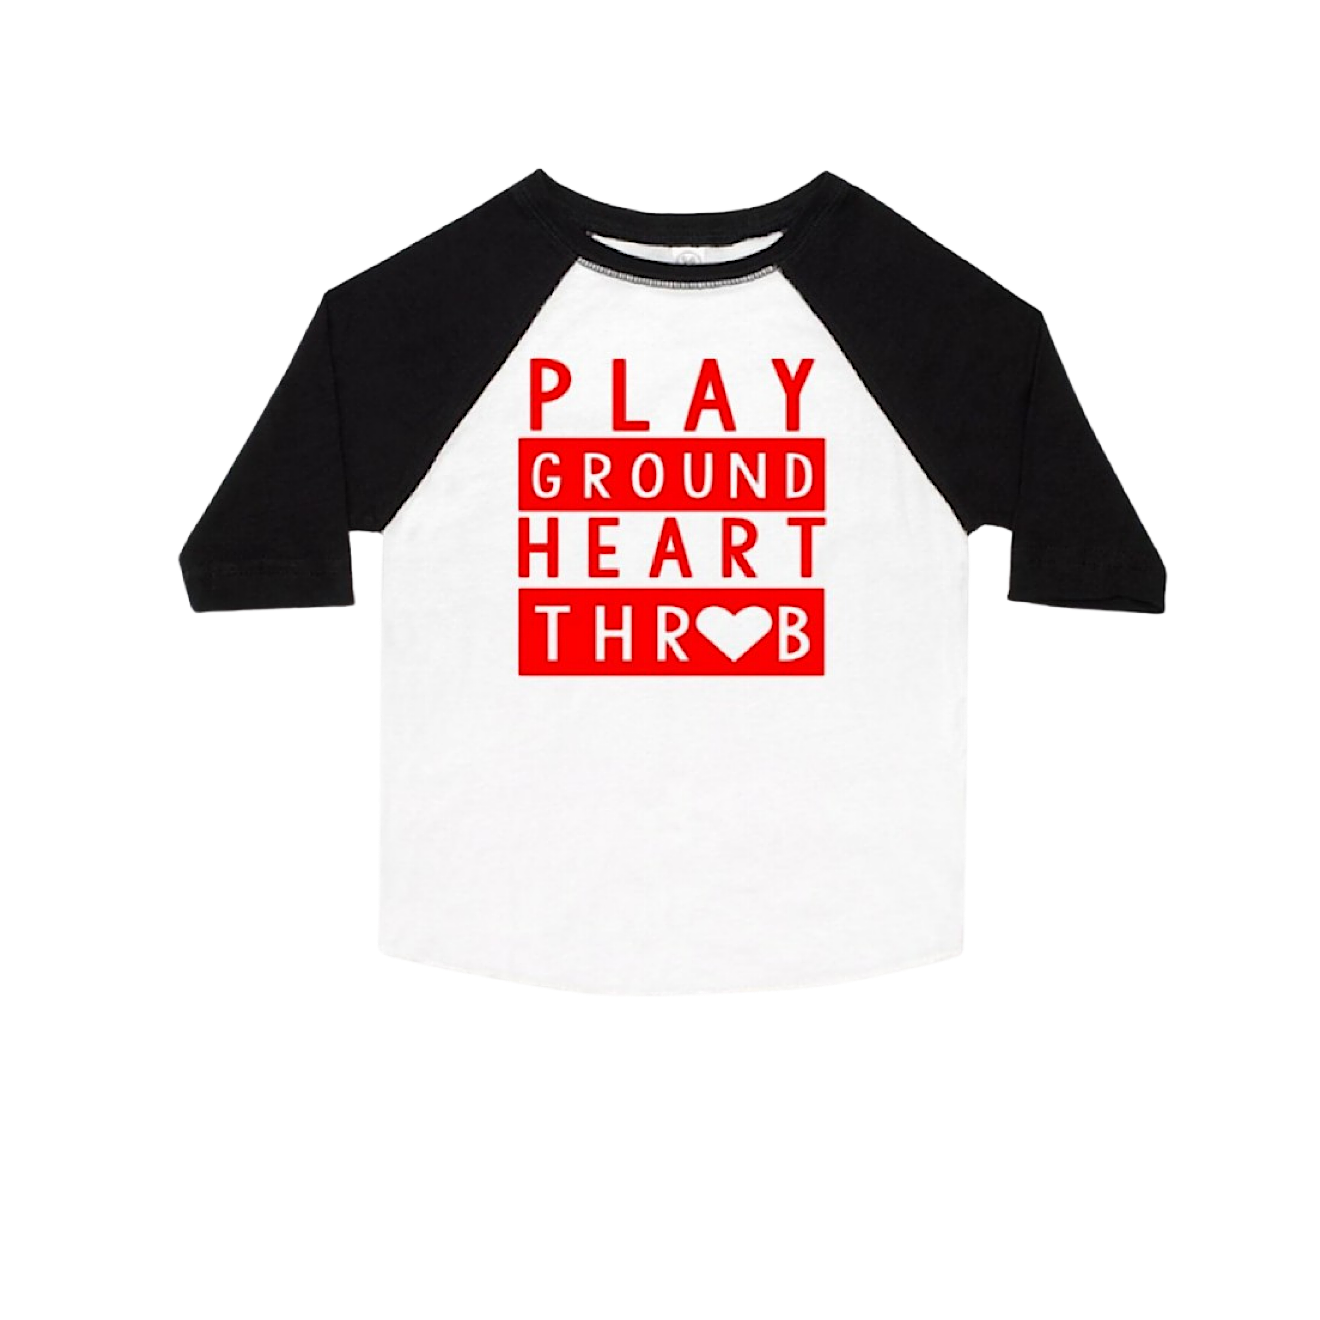 Playground Heartthrob T-Shirt